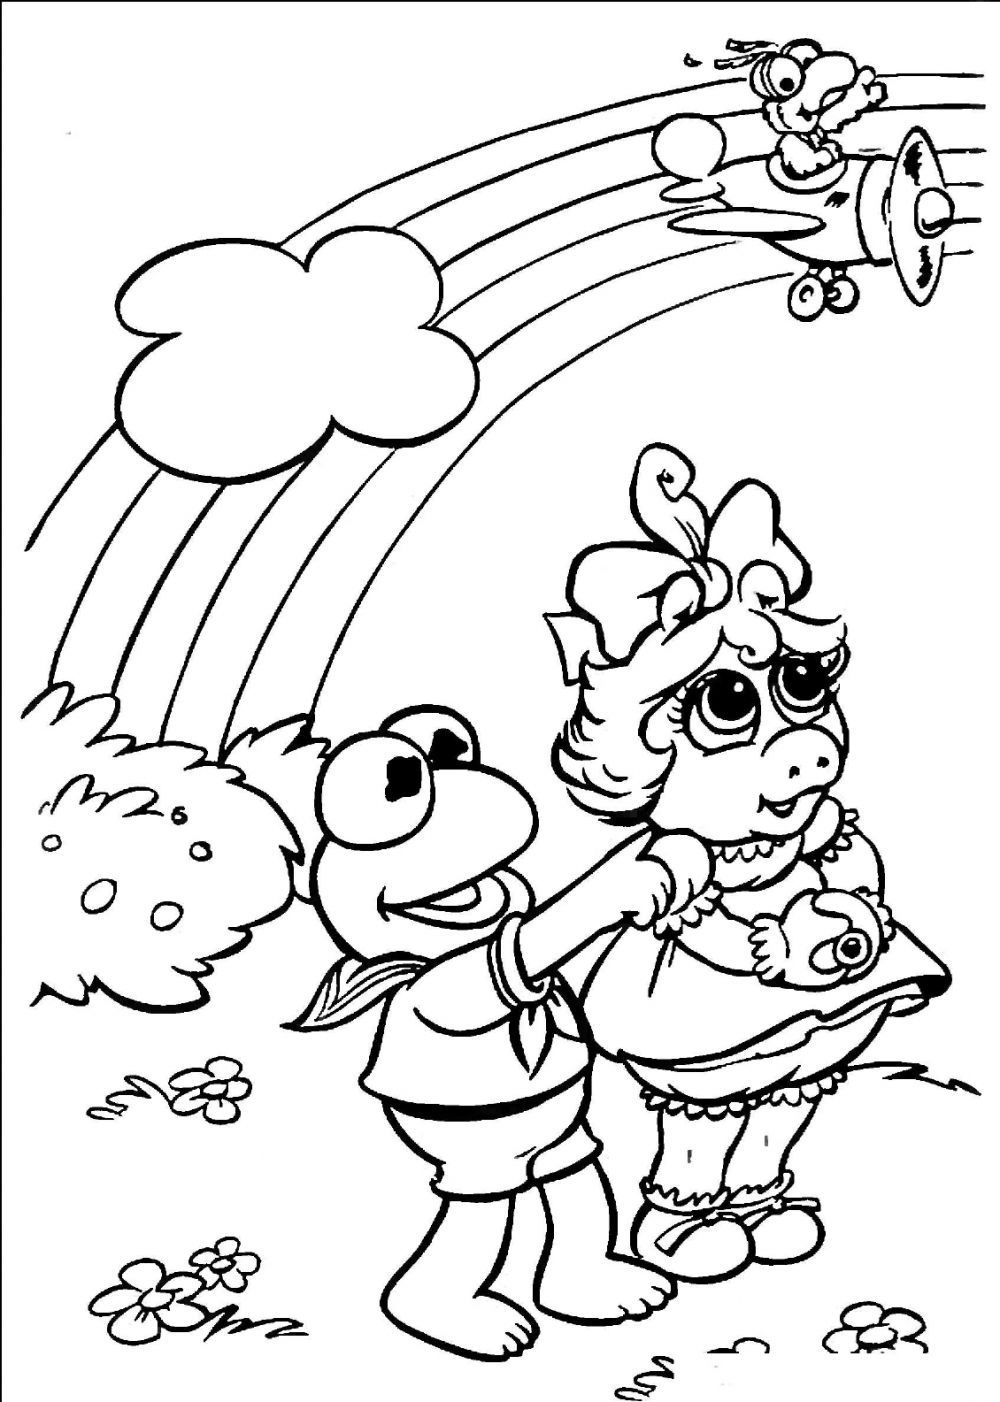 Muppet Babies Rainbow Coloring Page